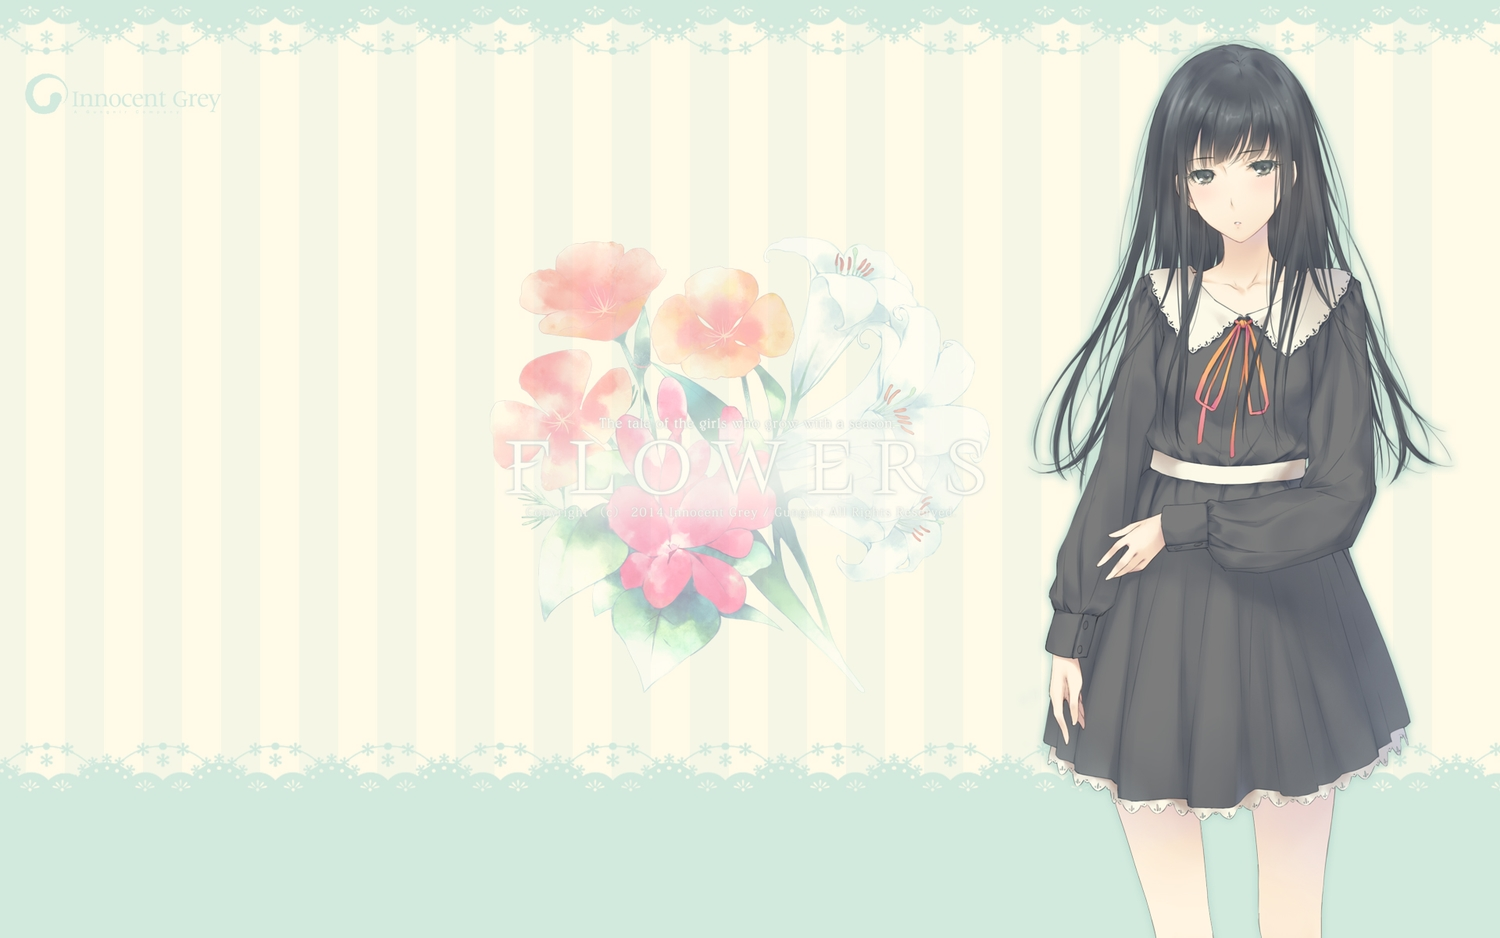 black_eyes black_hair flowers_(game) innocent_grey long_hair school_uniform shirahane_suou sugina_miki